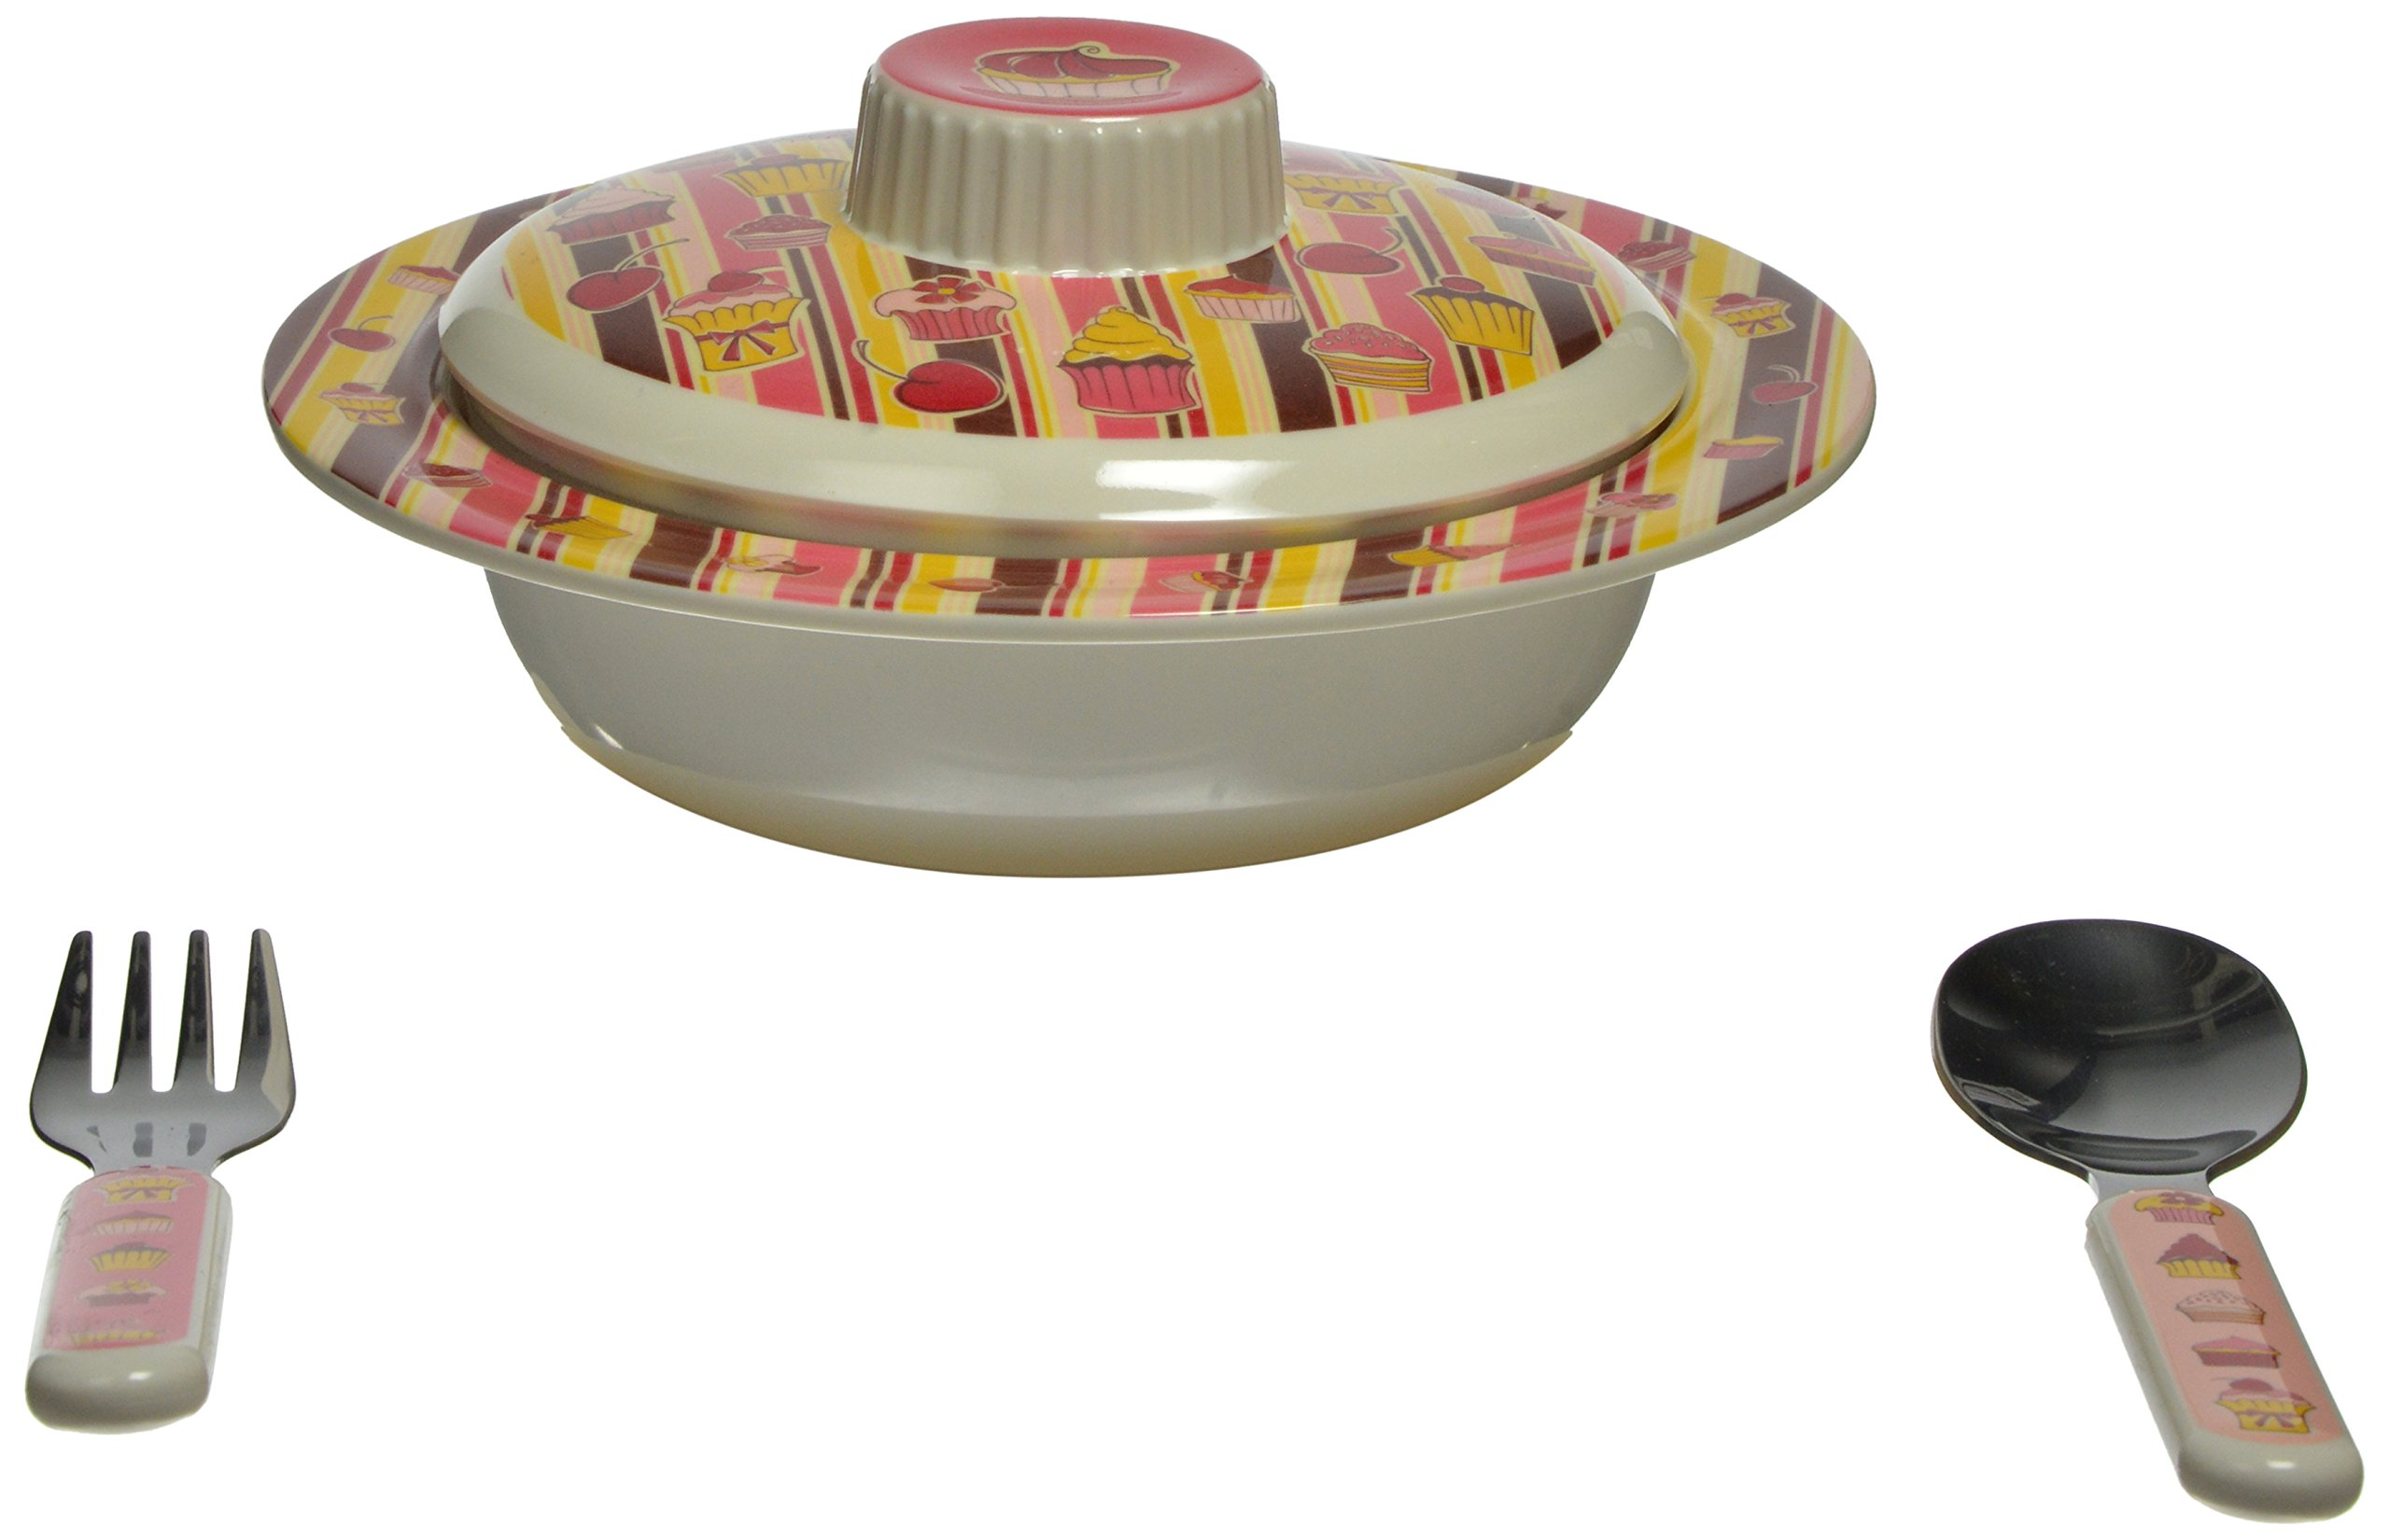 Sugarbooger Covered Suction Bowl Gift Set, Cupcake